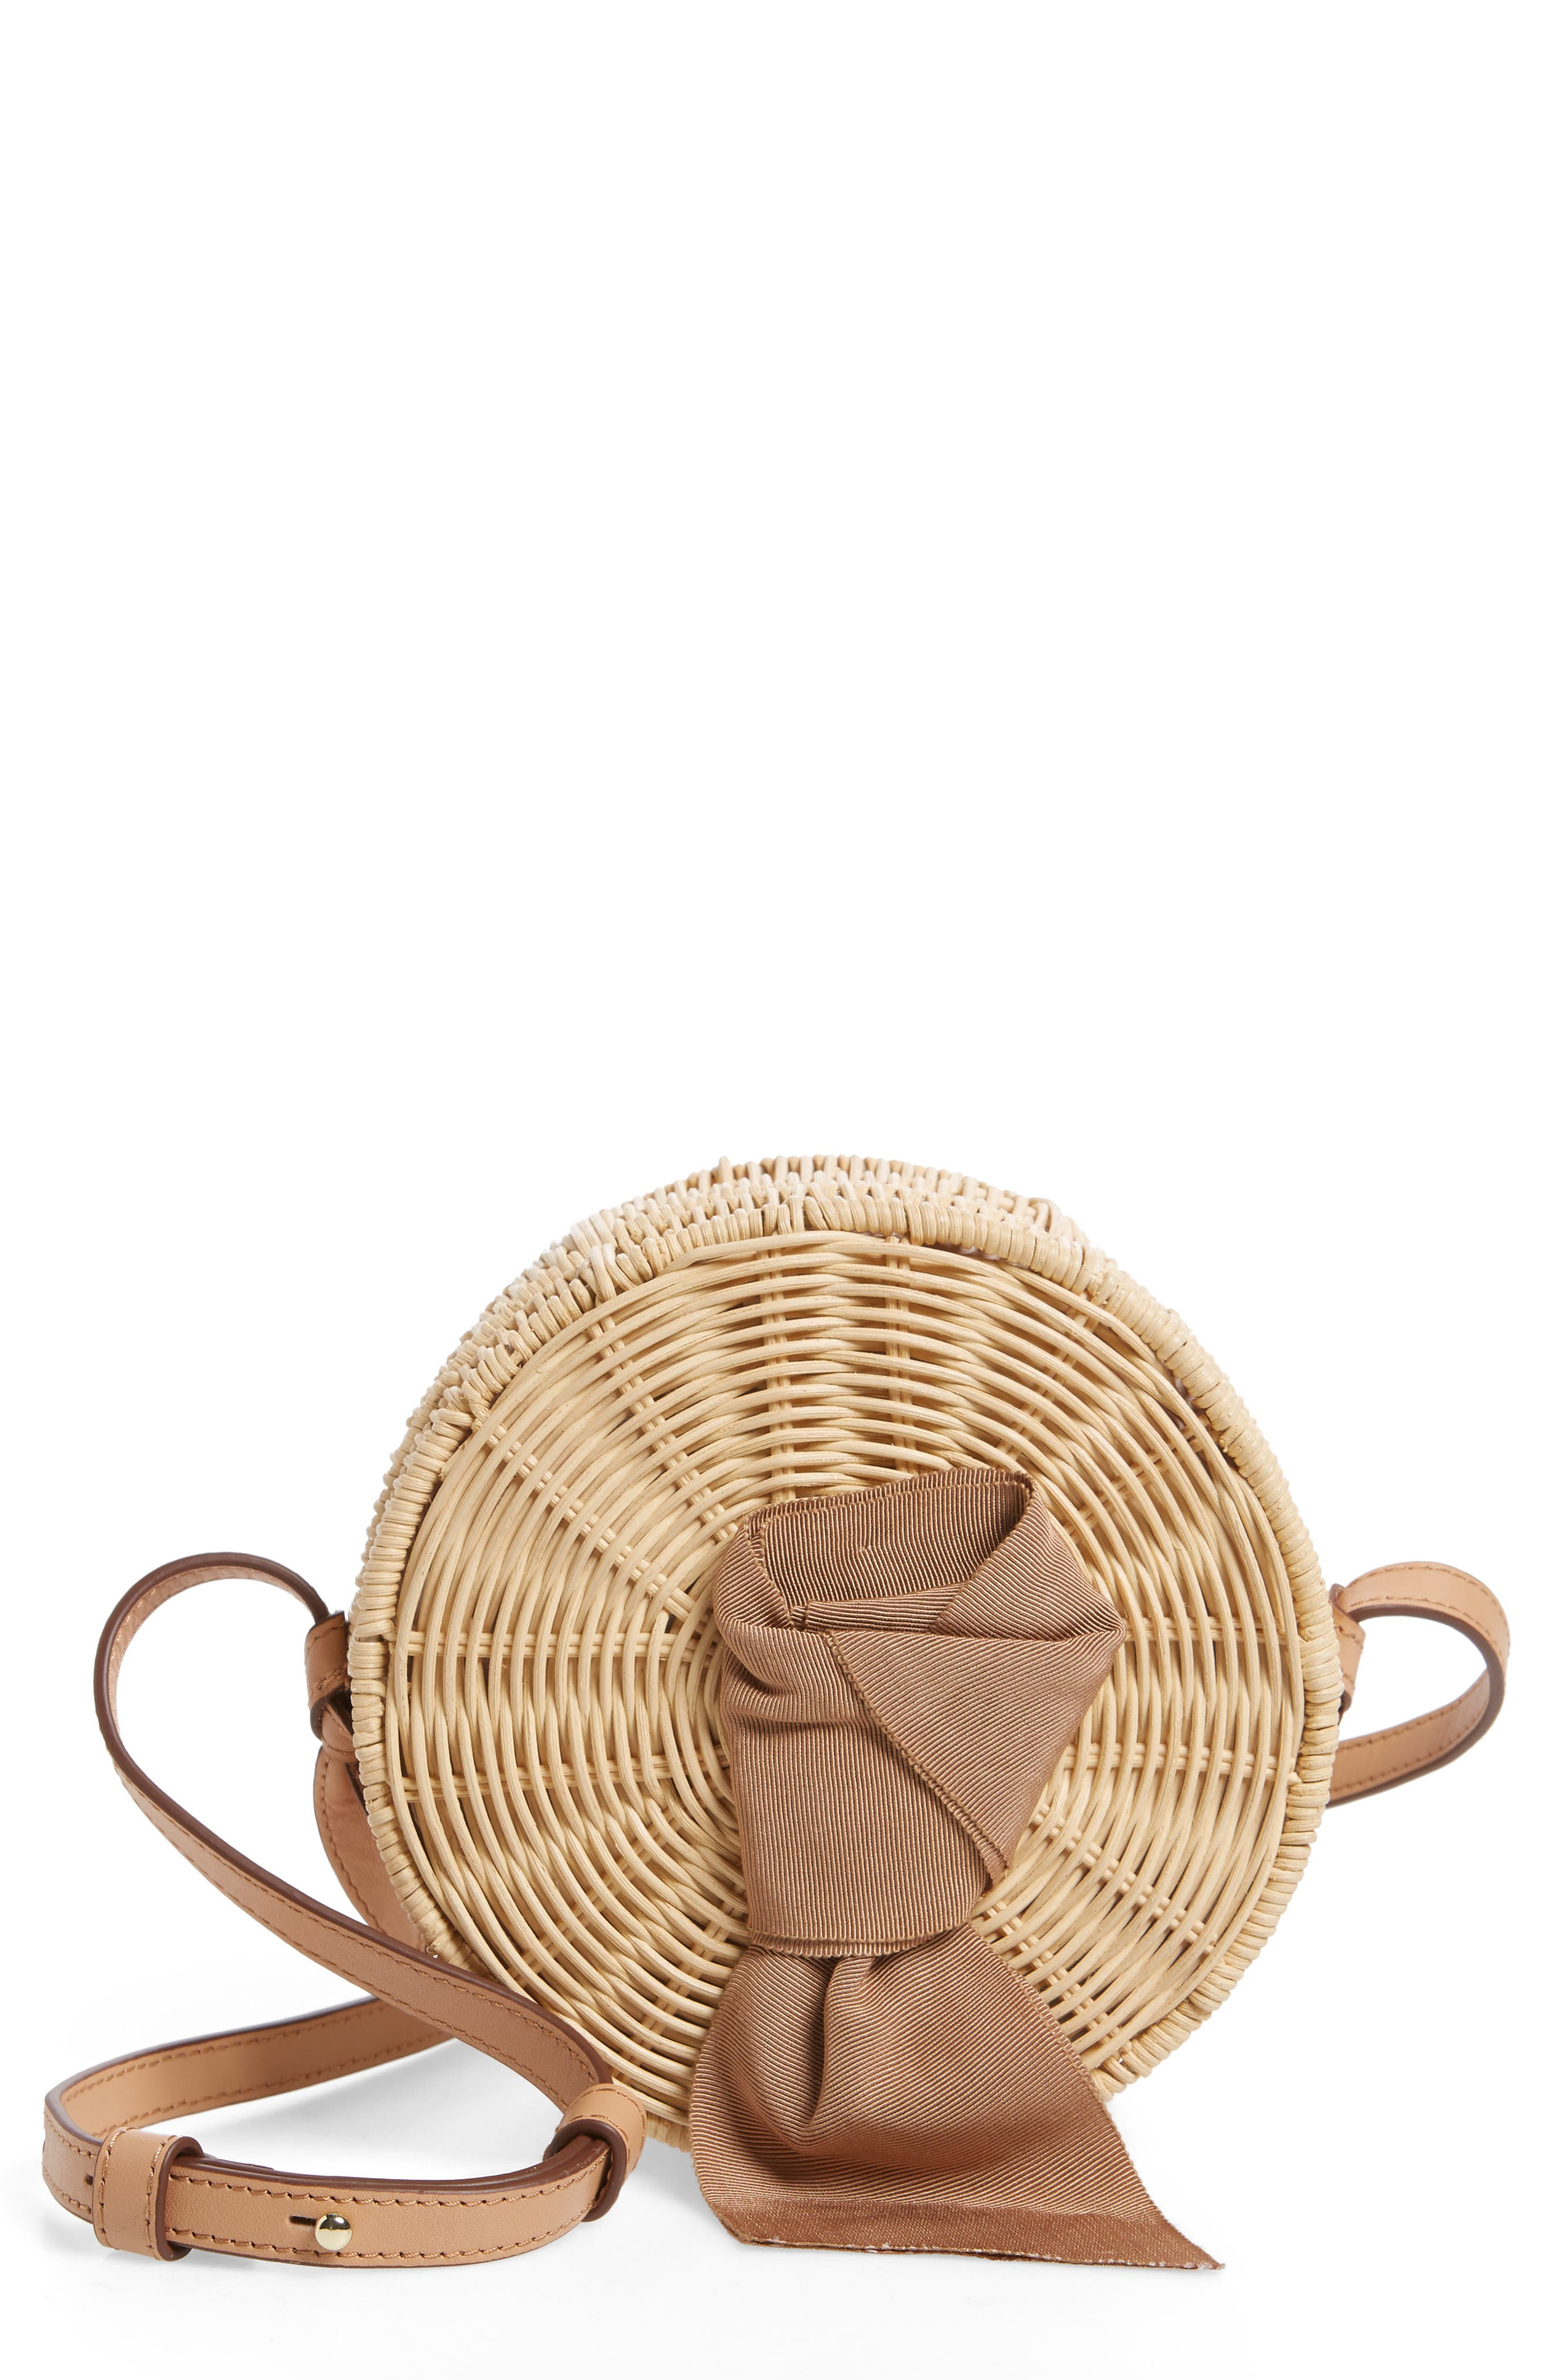 Paige Woven Rattan Crossbody Bag,                         Main,                         color, 250